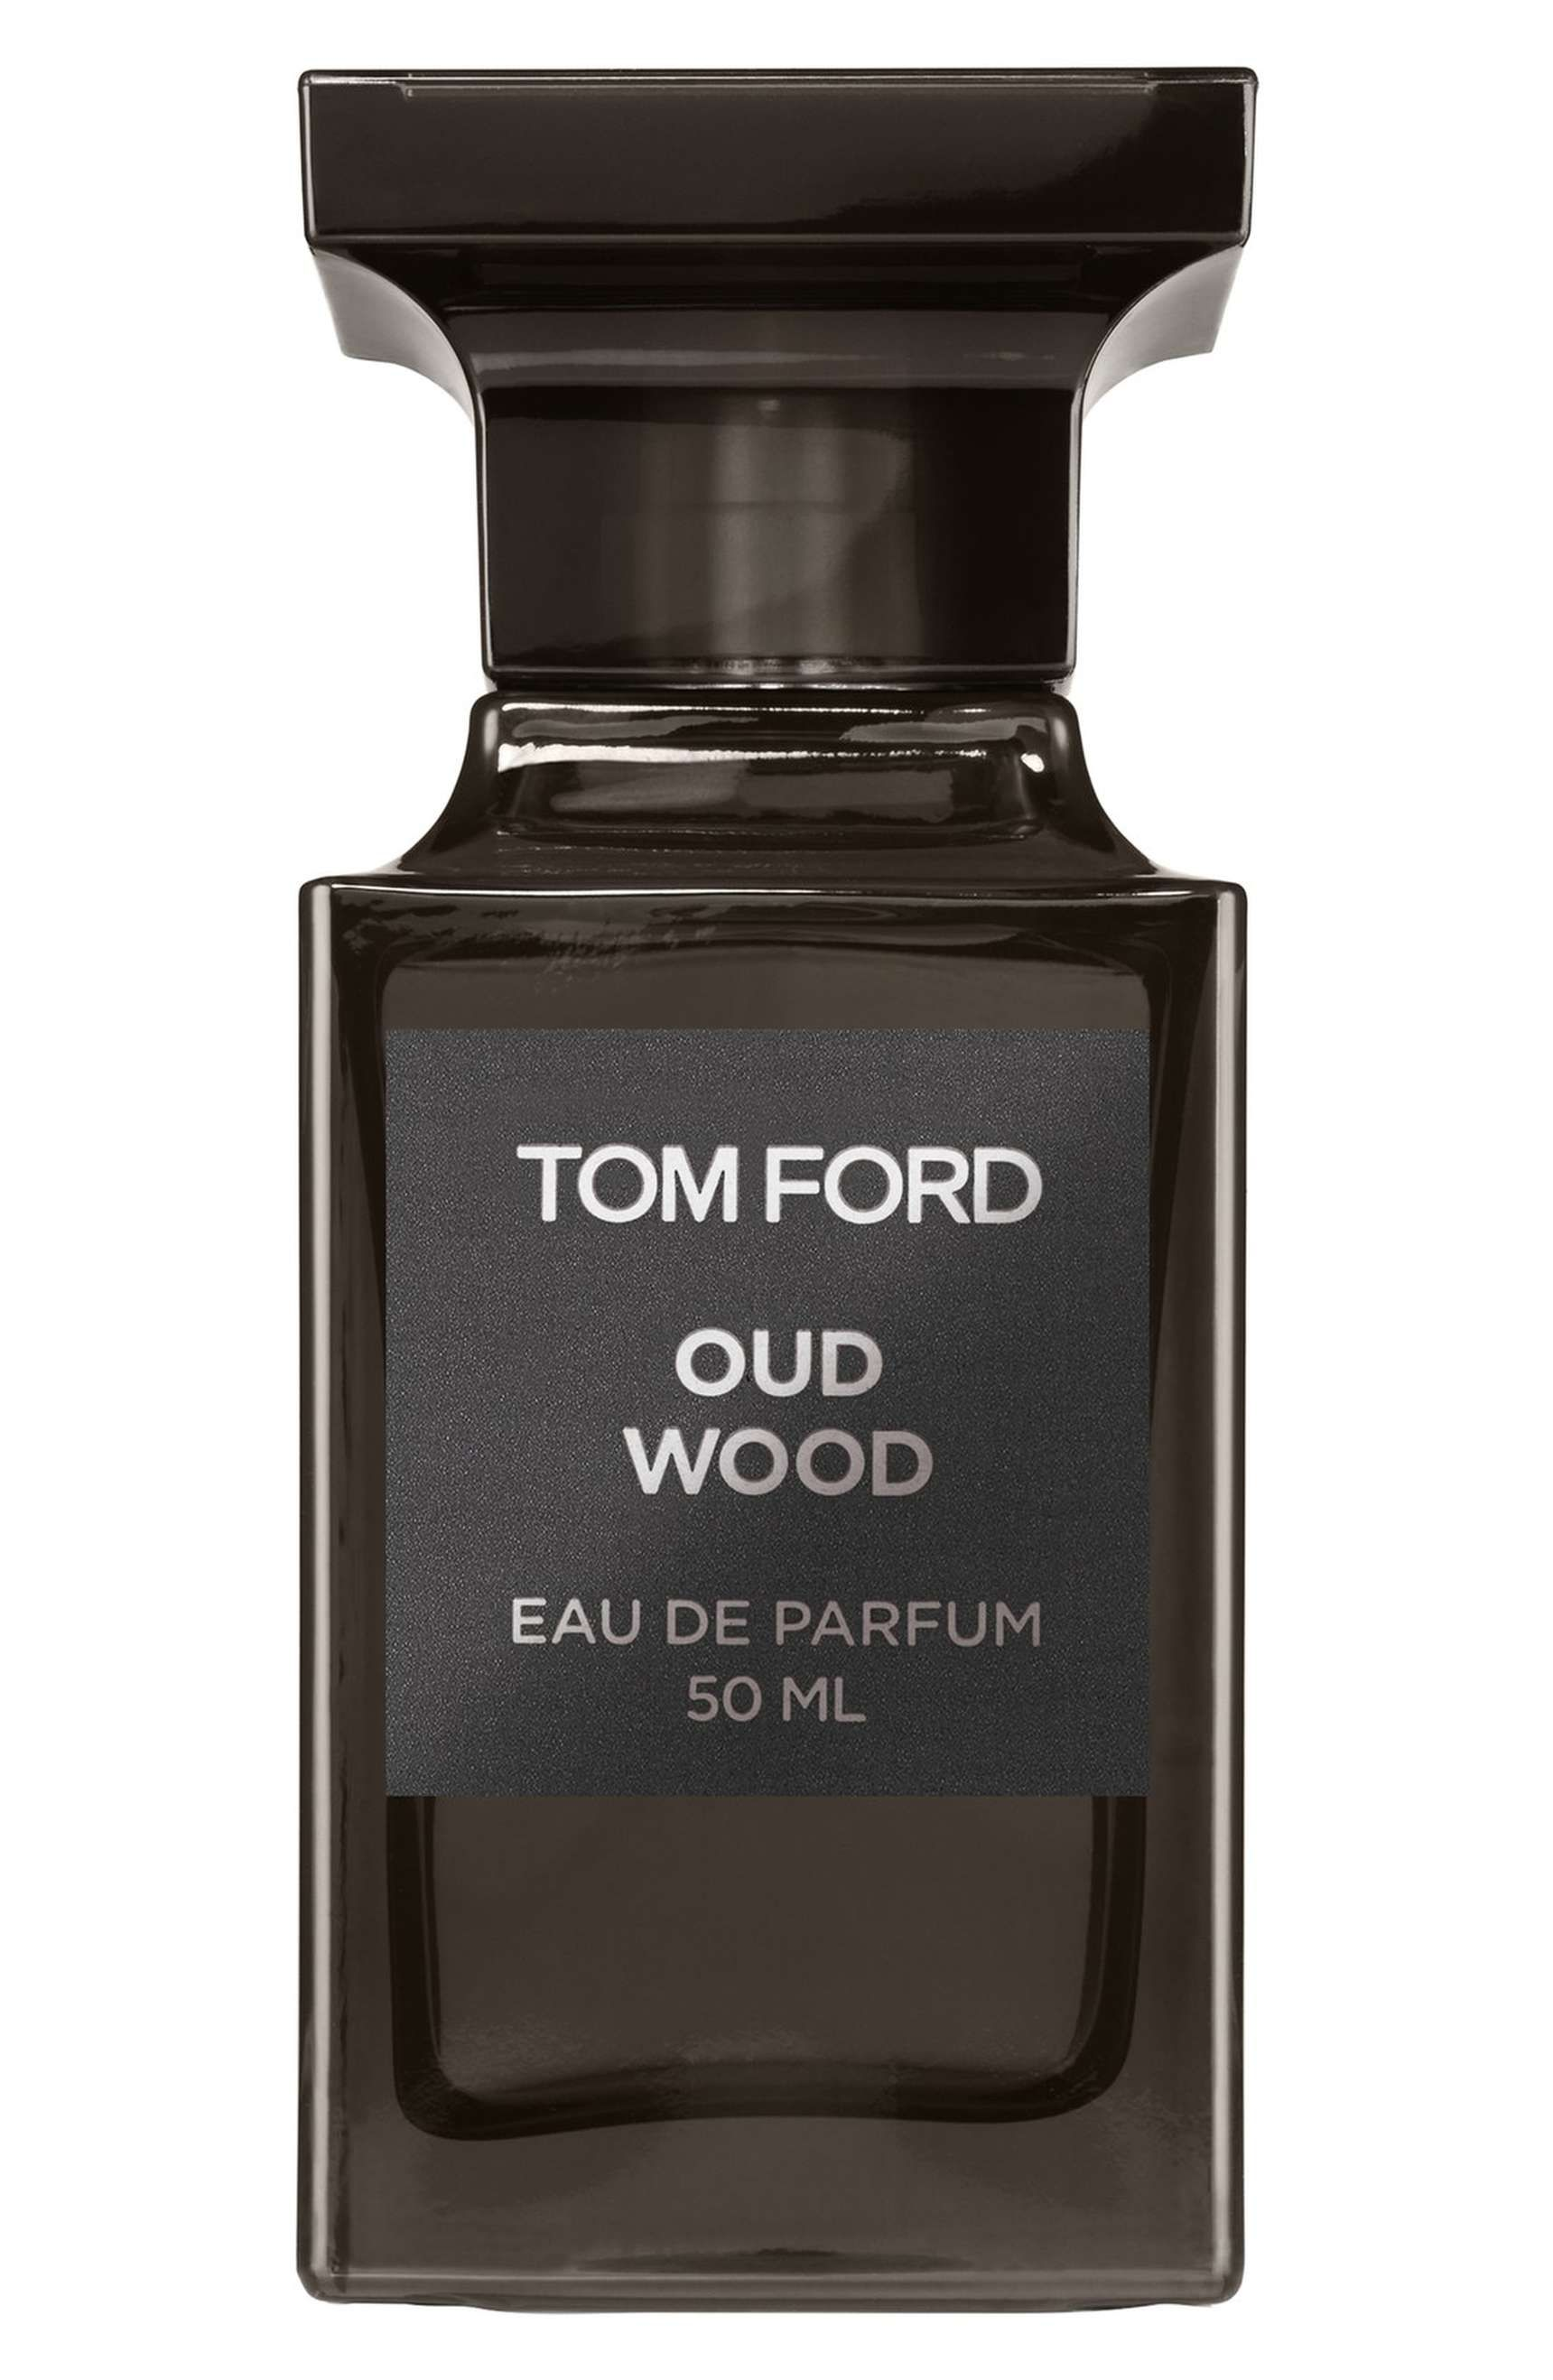 Tom Ford Cologne Oud Wood Fall Into Winter 2017 2018